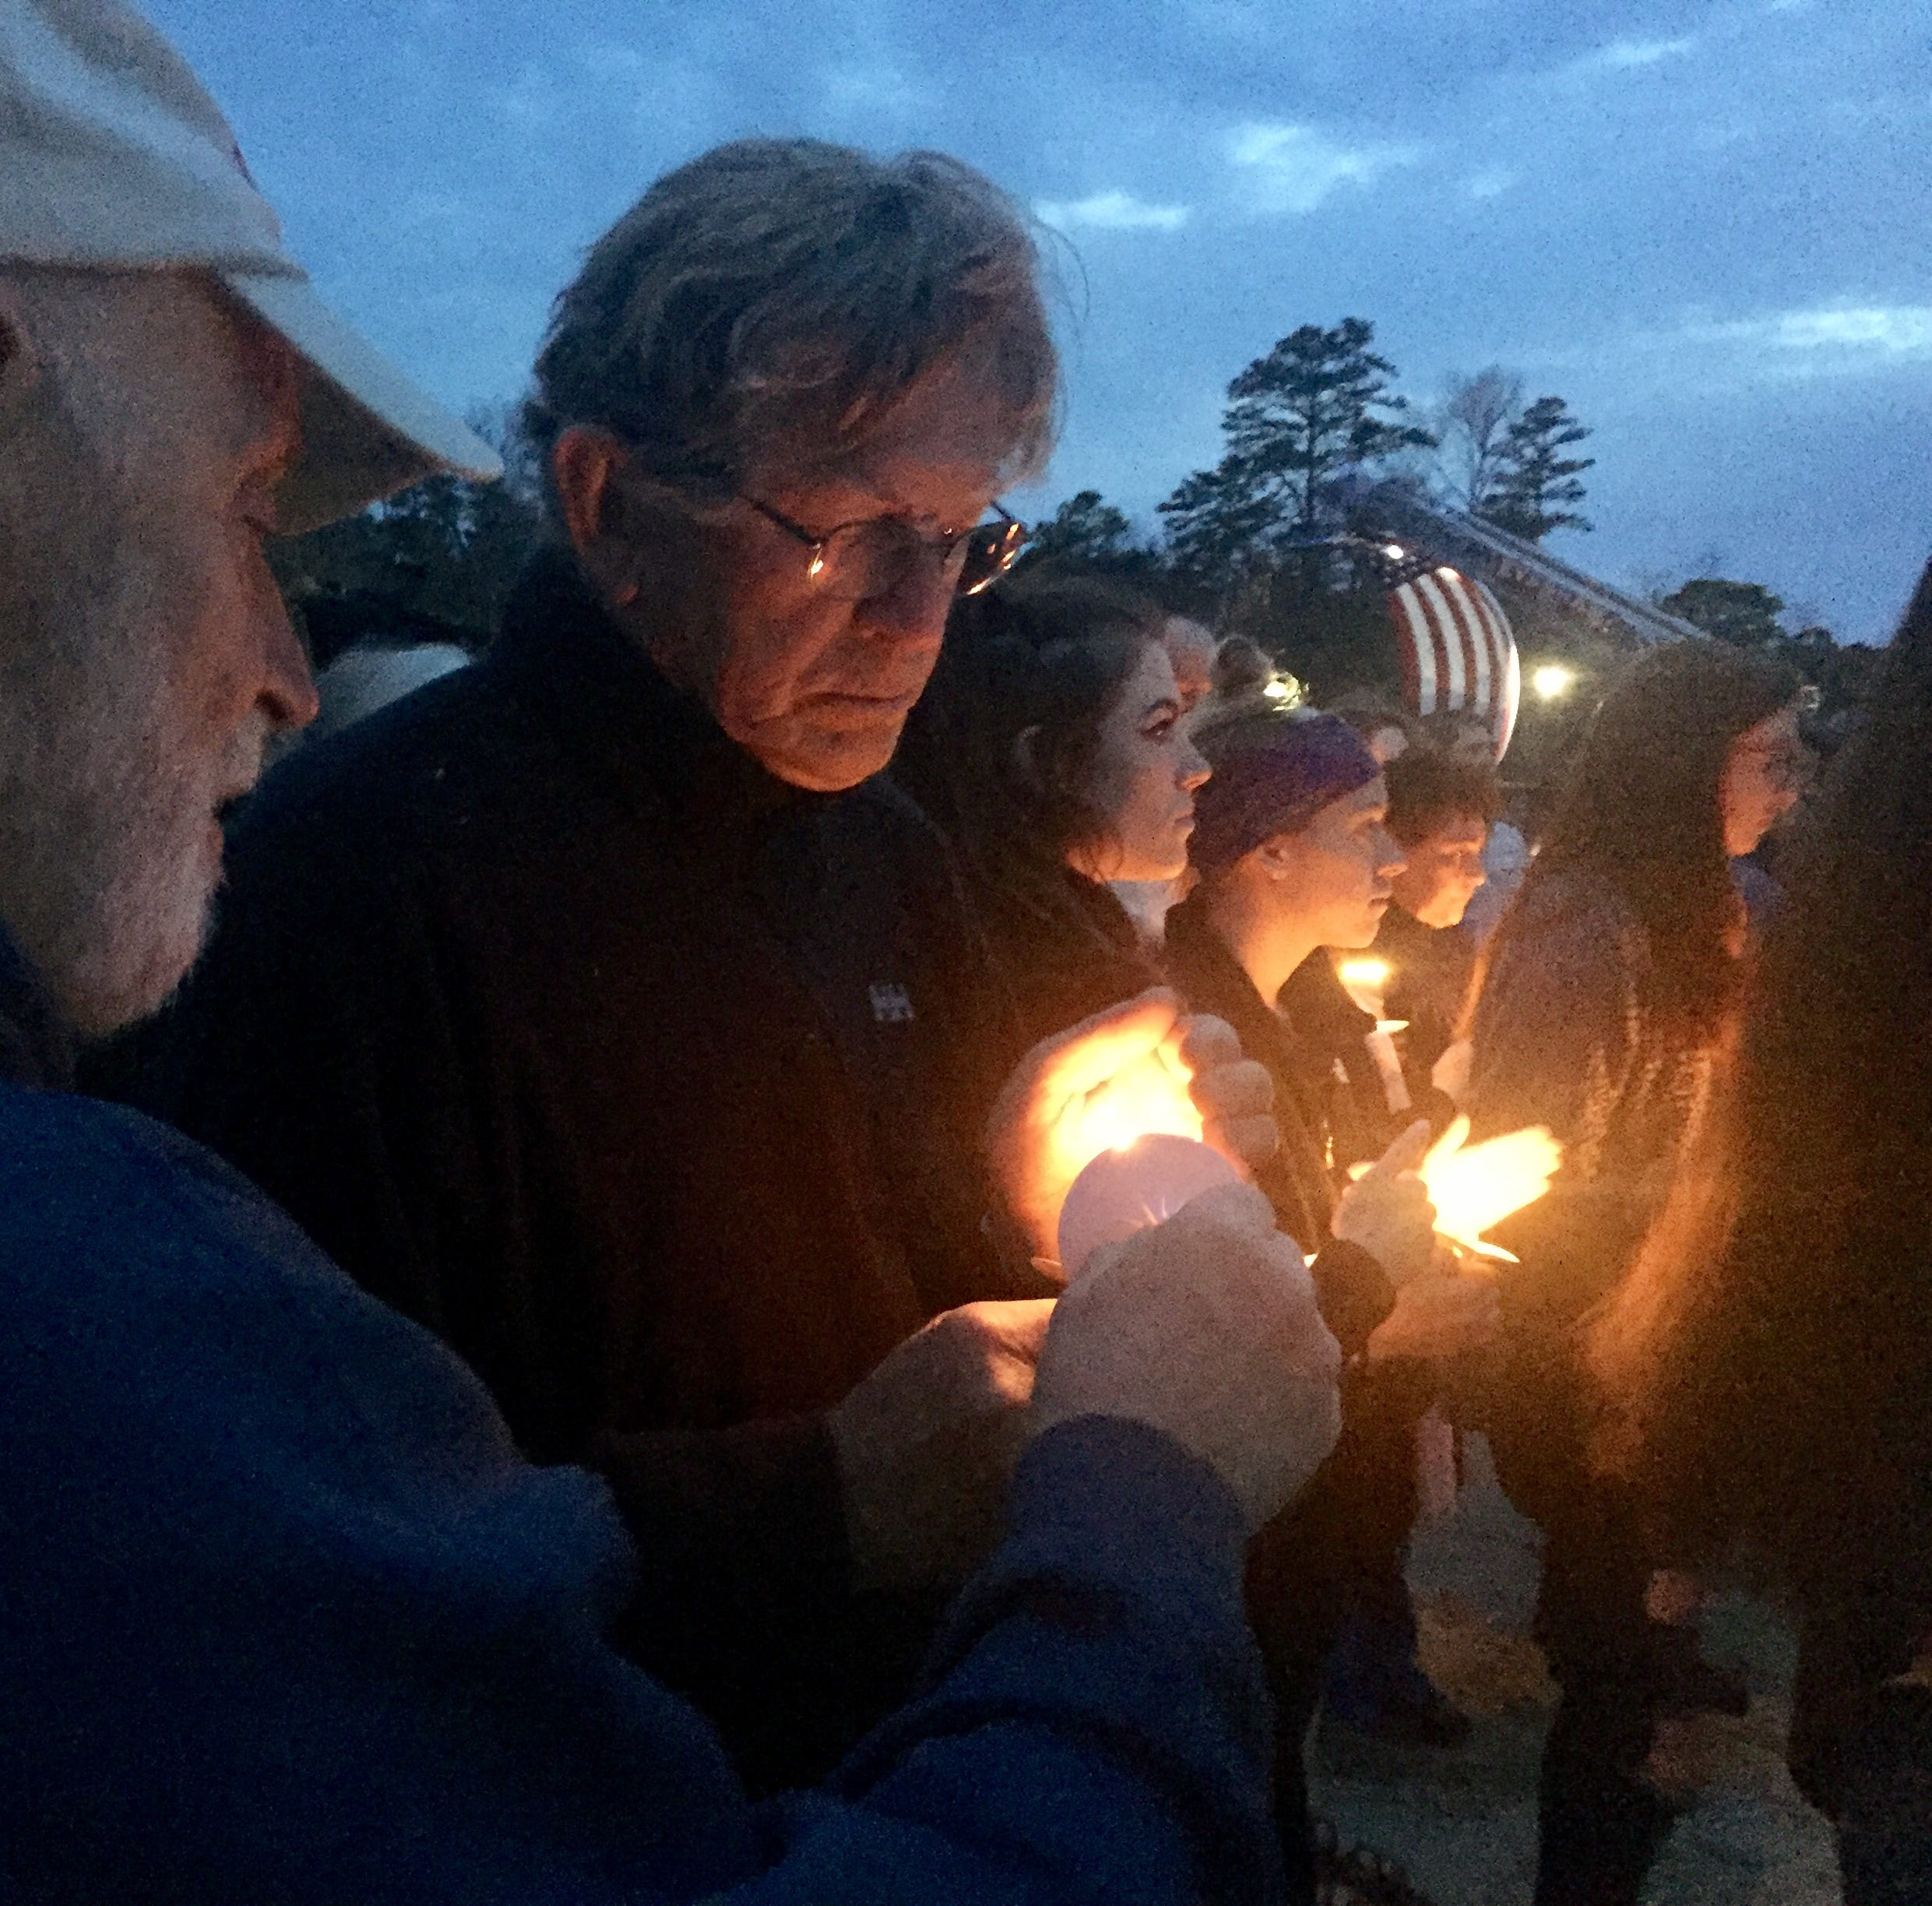 Fallen soldier recalled as 'ultimate best friend' at Medford Lakes vigil